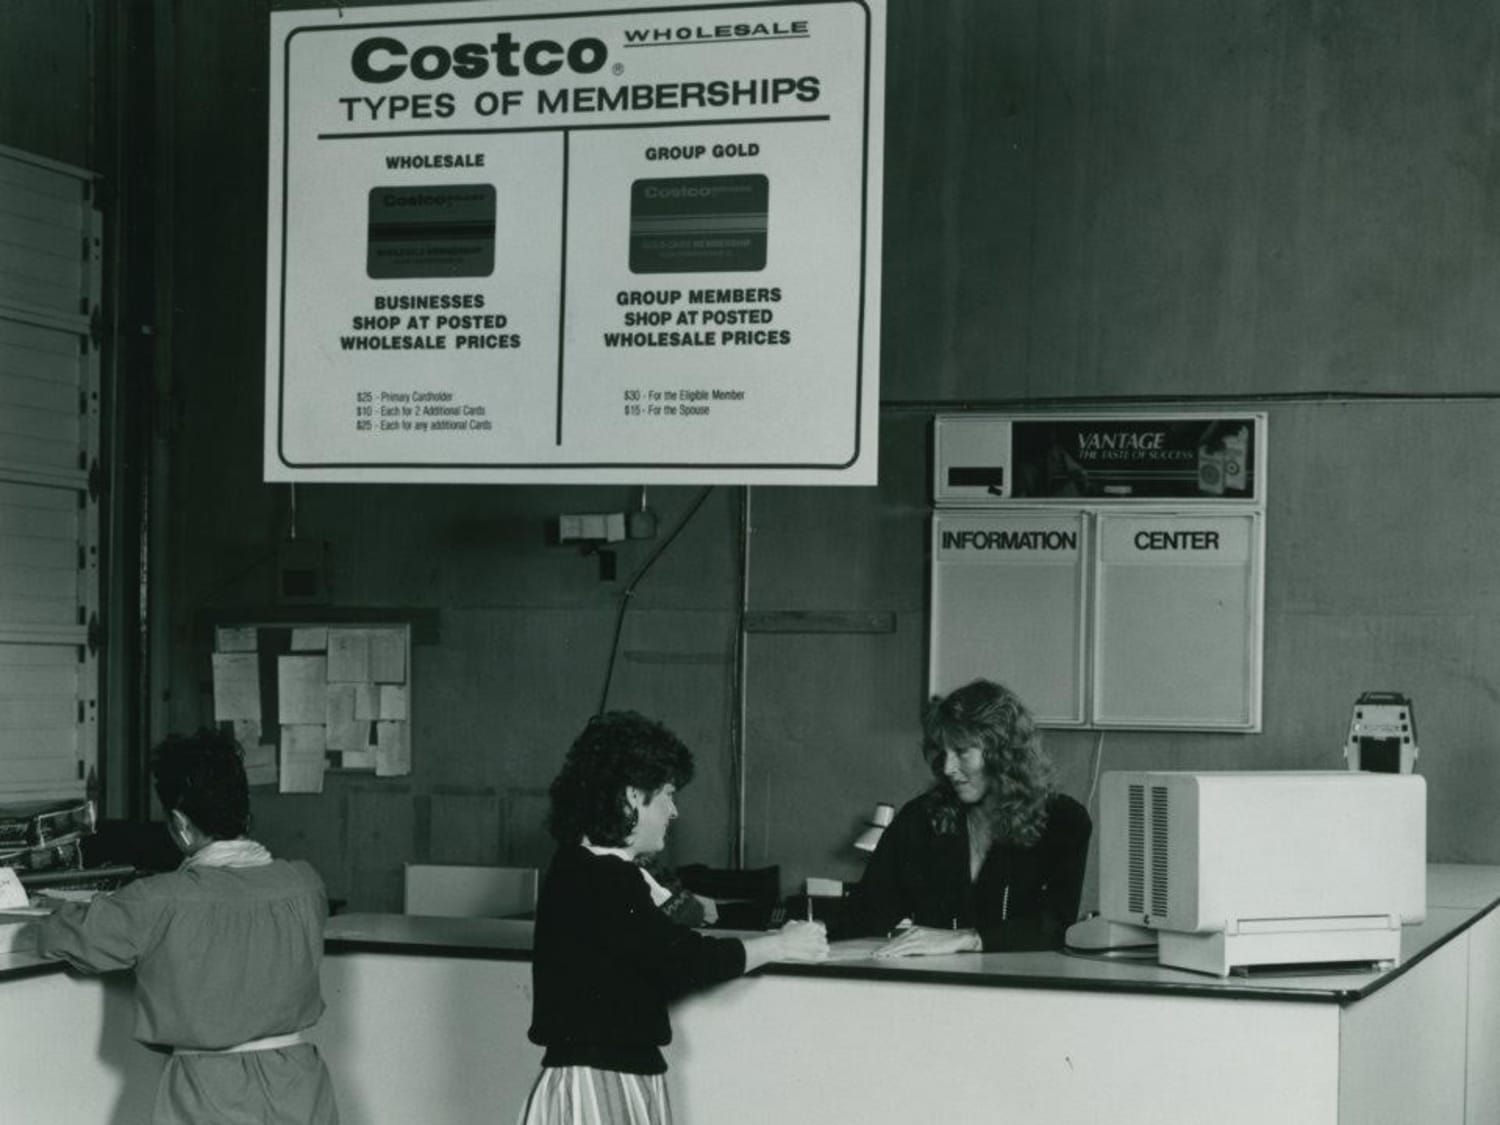 Costco Just Shared What Their First Store in 1983 Looked Like